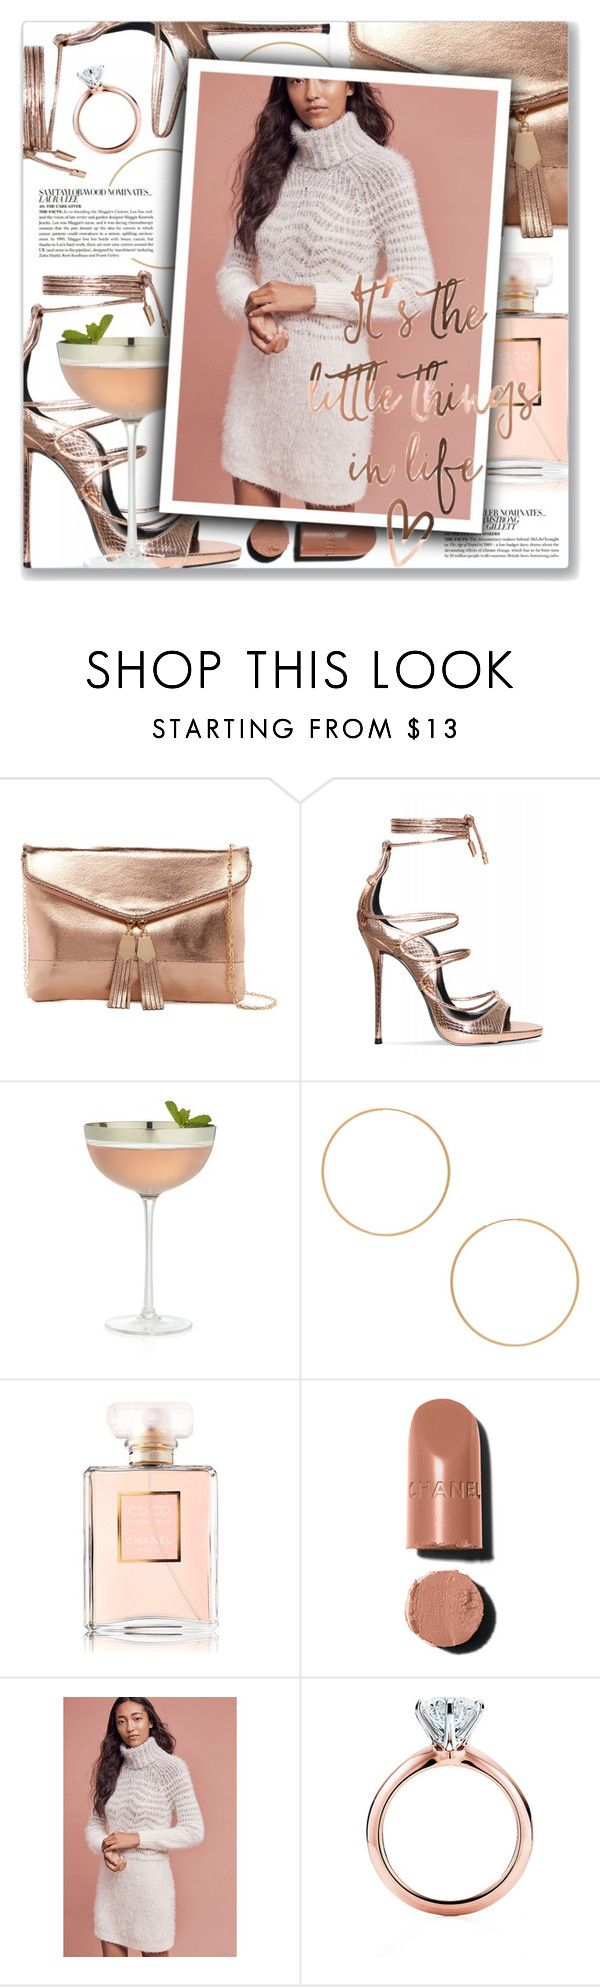 """""""Eres, Café Tacvba"""" by blendasantos ❤ liked on Polyvore featuring Urban Expressions, Crate and Barrel, ERTH, McGinn, Chanel, Sleeping on Snow, Tiffany & Co., rosegold and under100"""